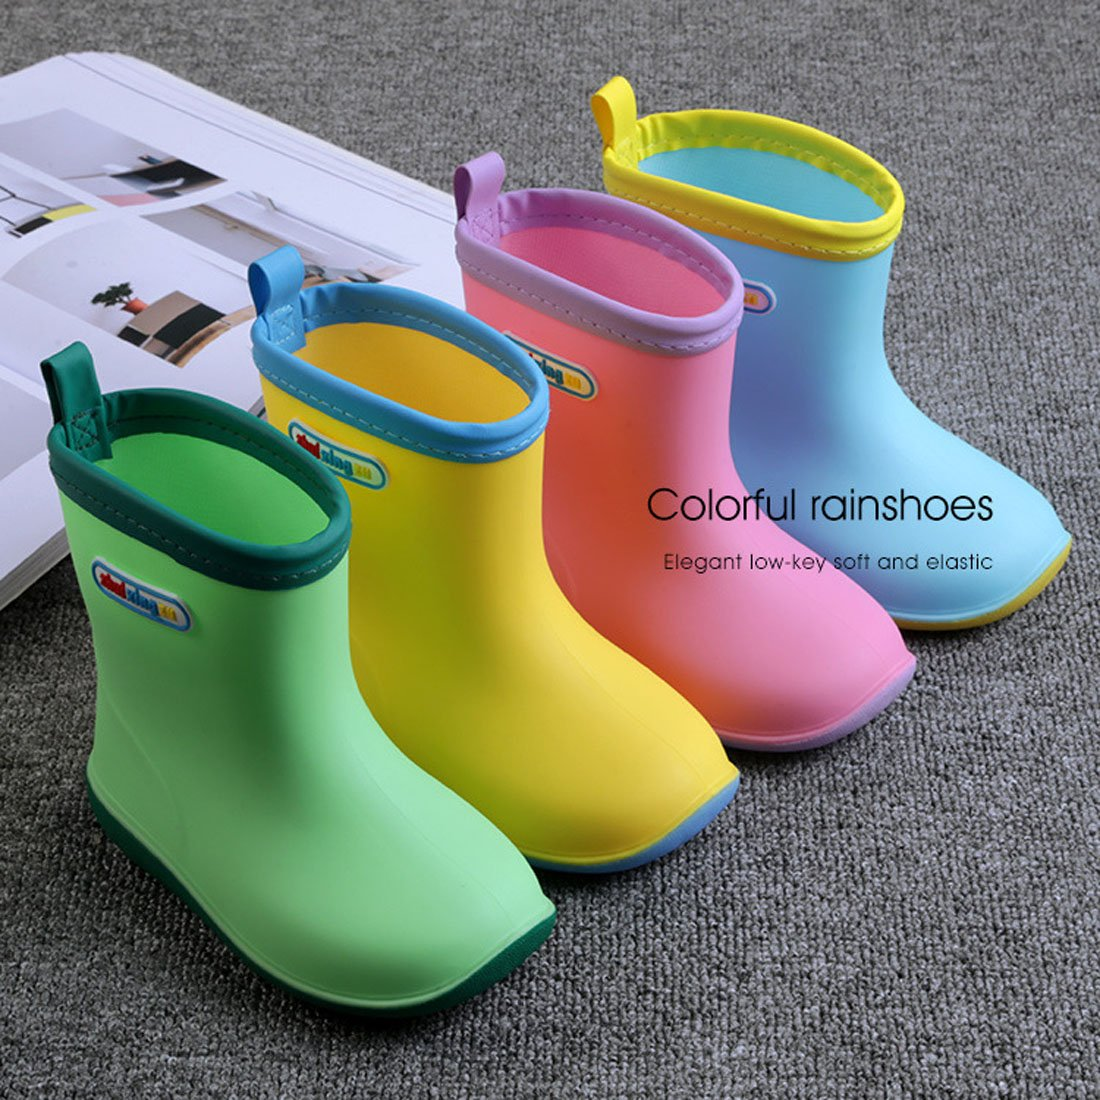 Asgard Cute Rain Boots for Kids Waterproof Candy Color Ankel Rubber Boots, with Warm Cosy Soft Socks B16 by Asgard (Image #2)